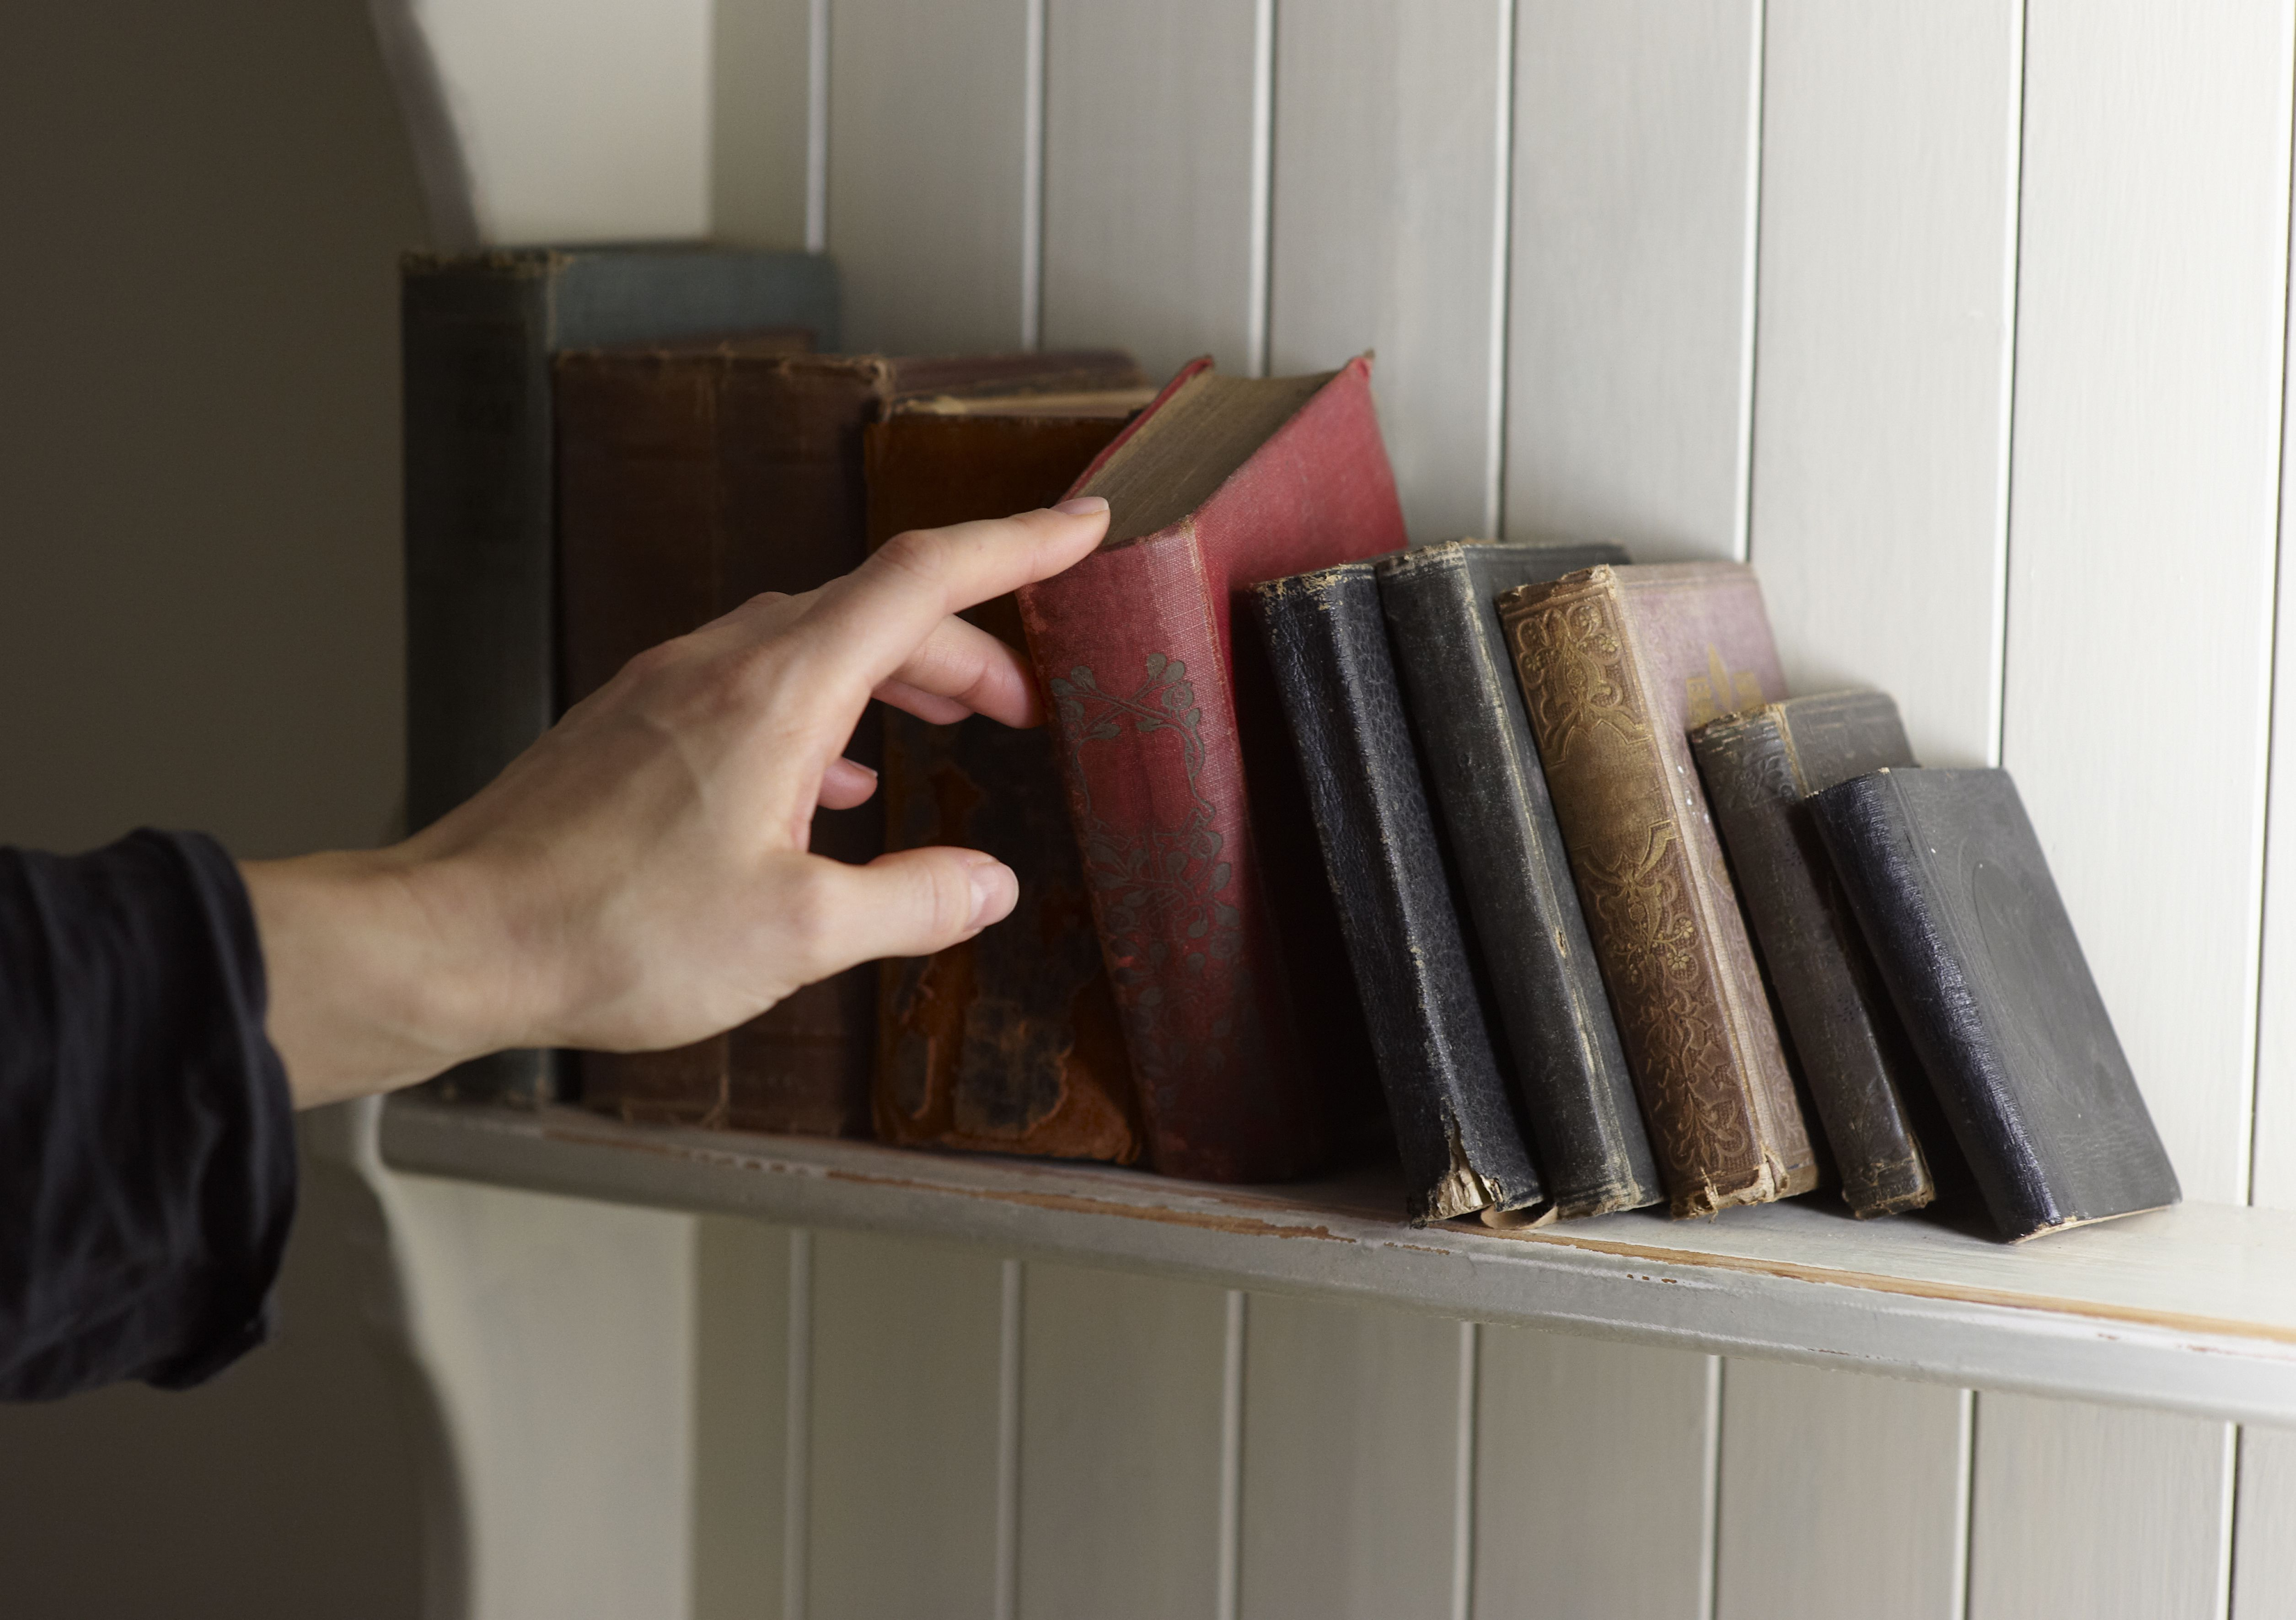 Hand selecting book from shelf